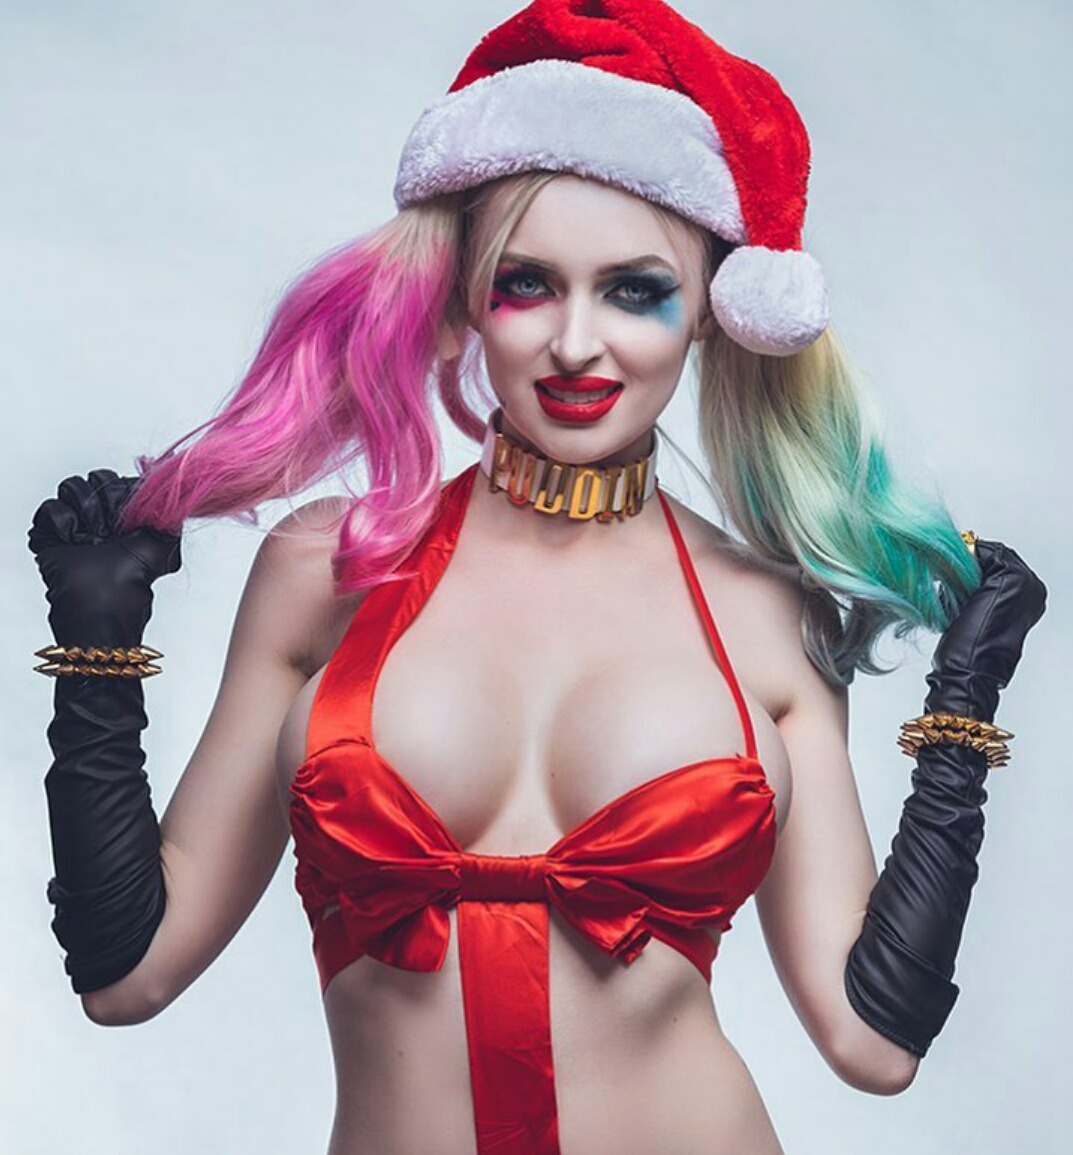 Holiday Harley Quinn By Kristen Lanae